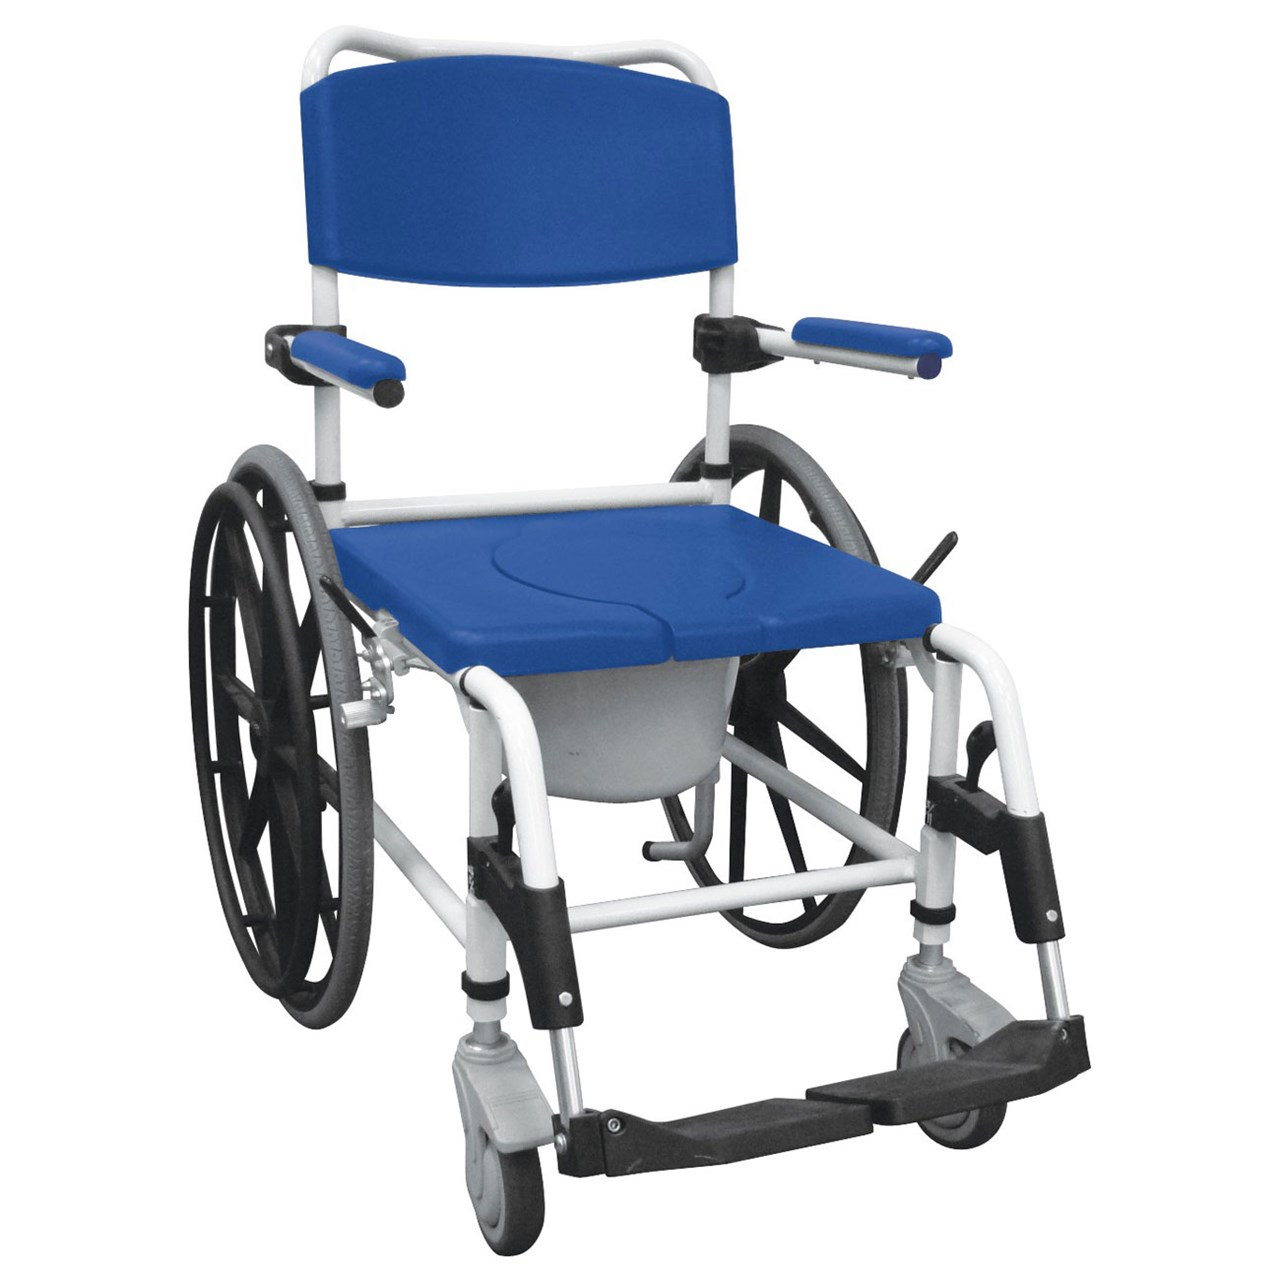 Shower Chair With Wheels Maxiaids Aluminum Rehab Shower Commode Chair With 24